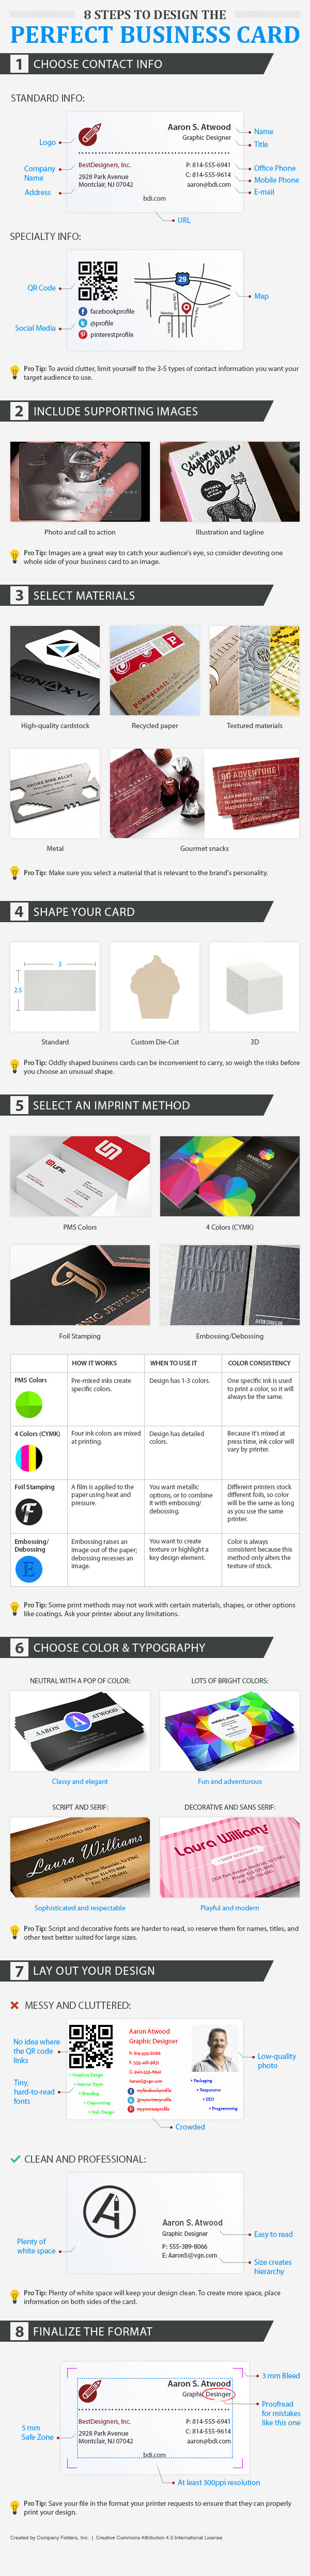 Business card design tips - infographic